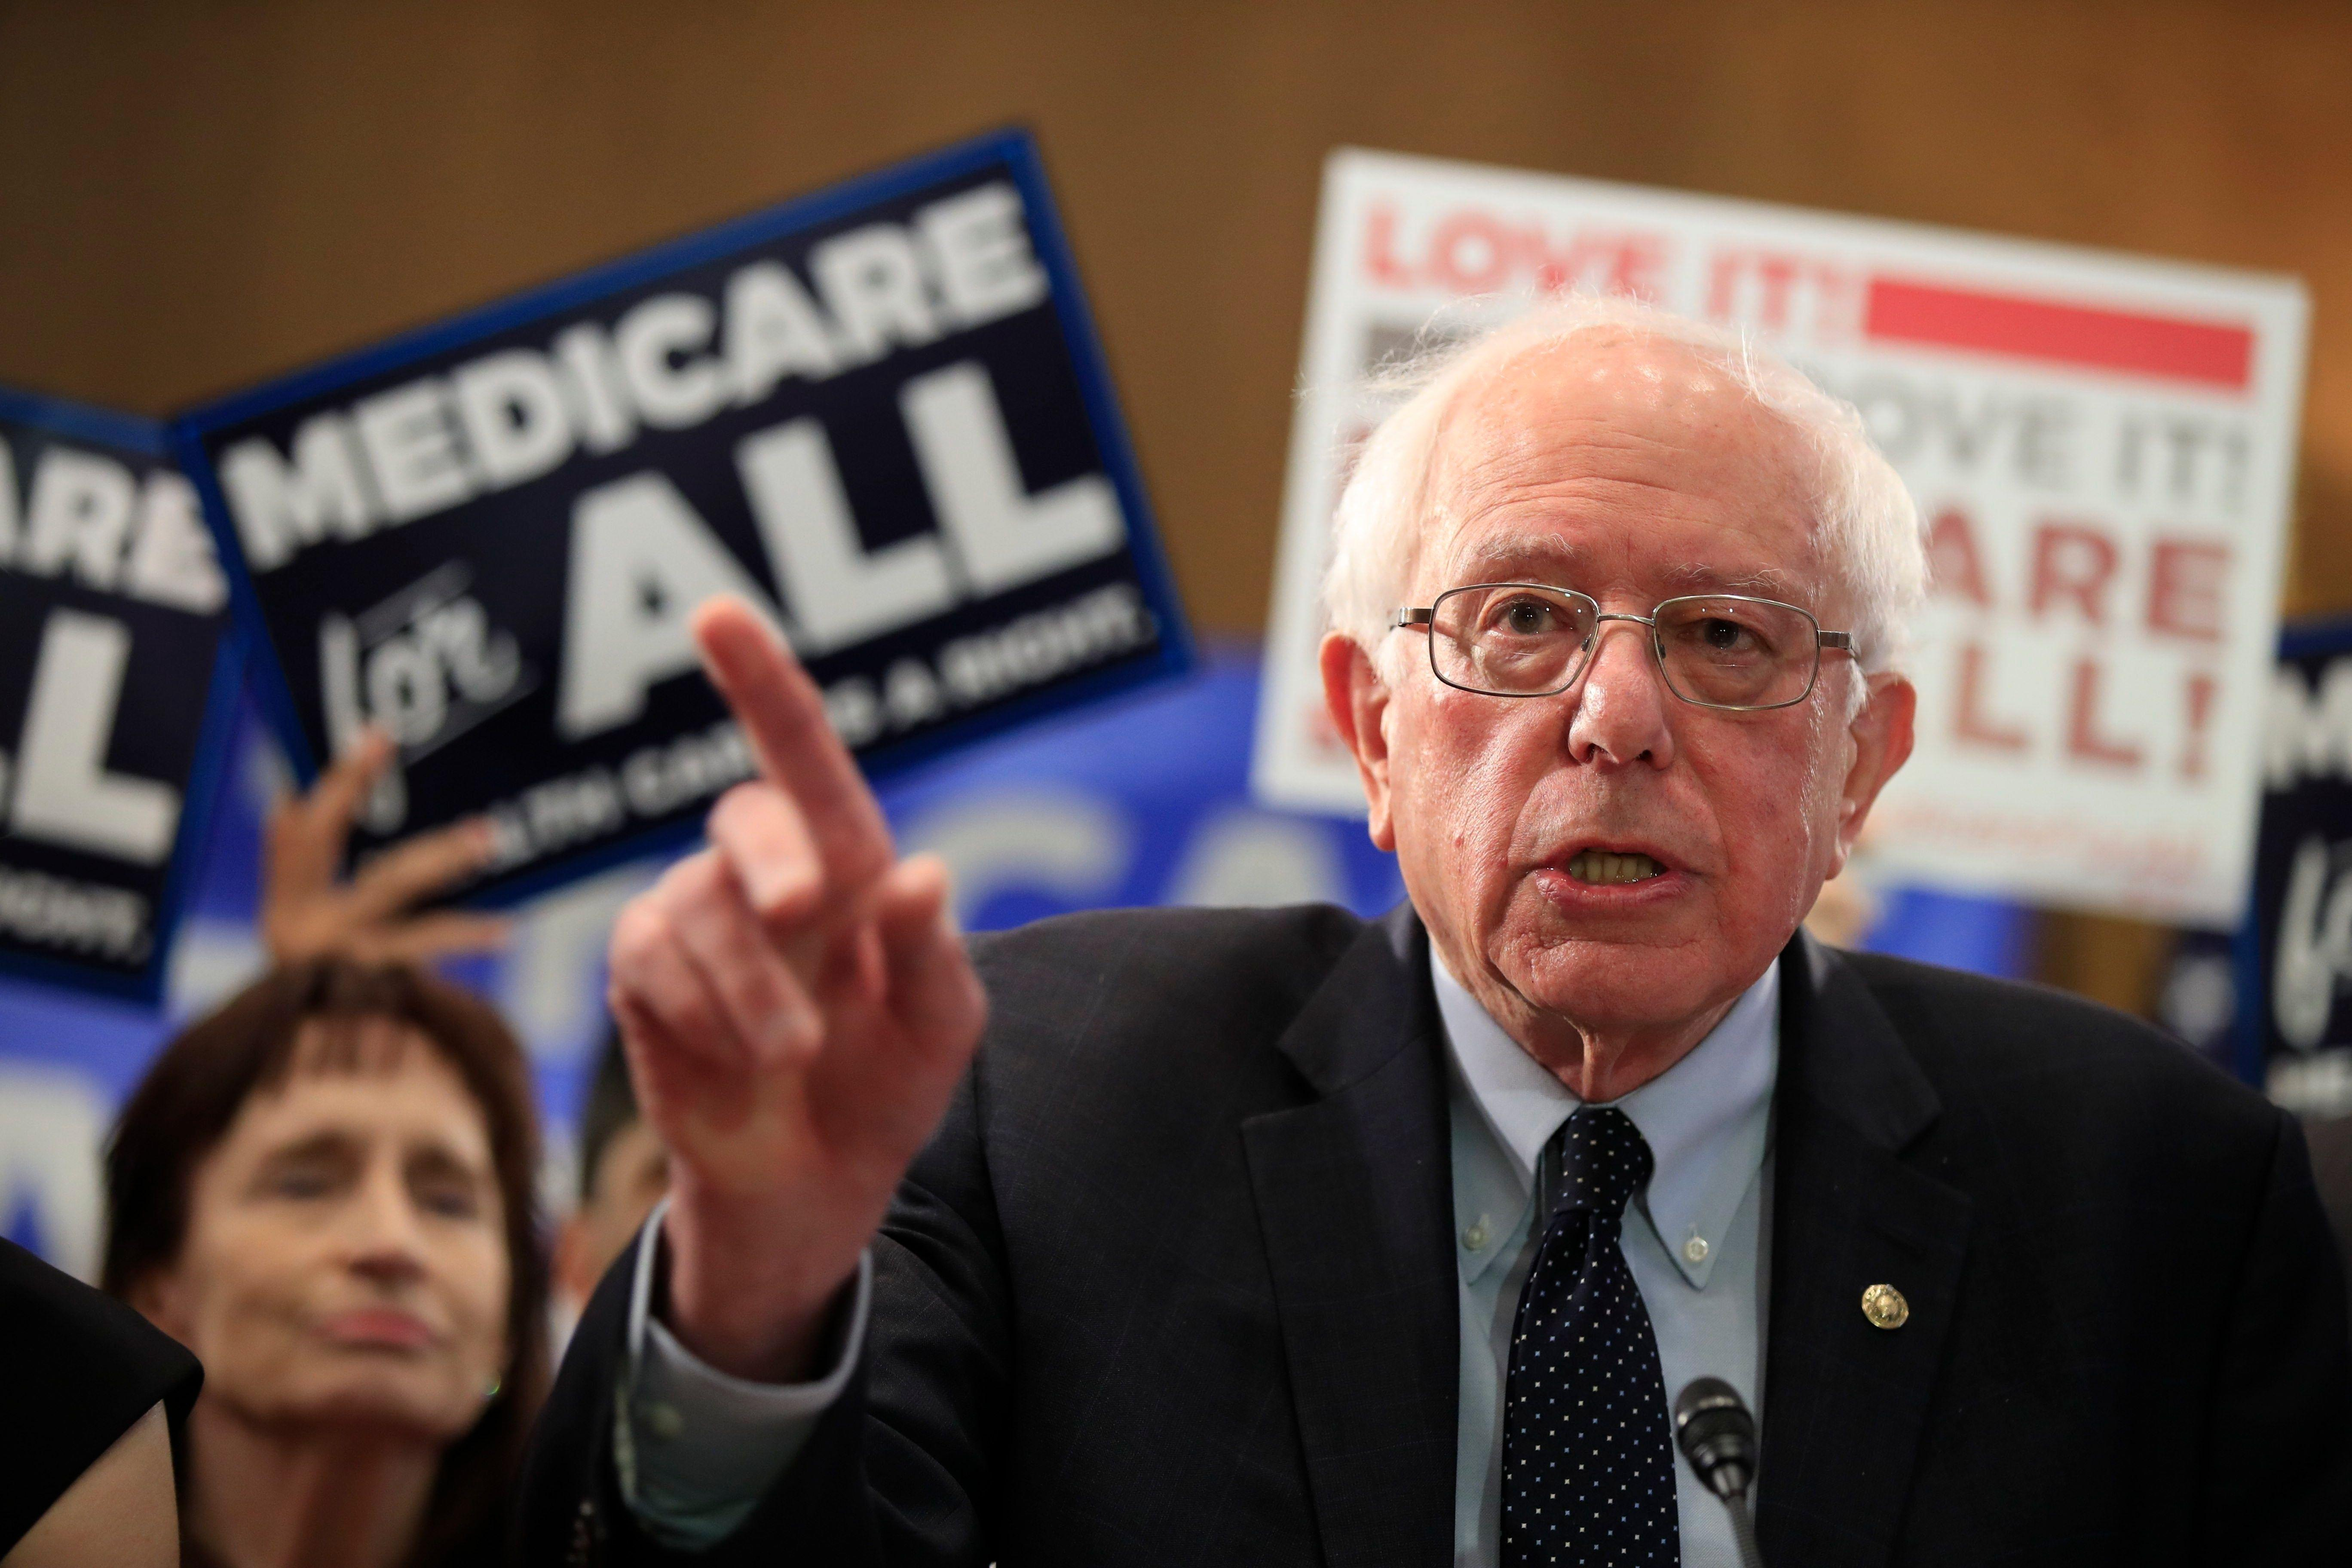 CEO: One key thing needs to happen before U.S. considers universal health care